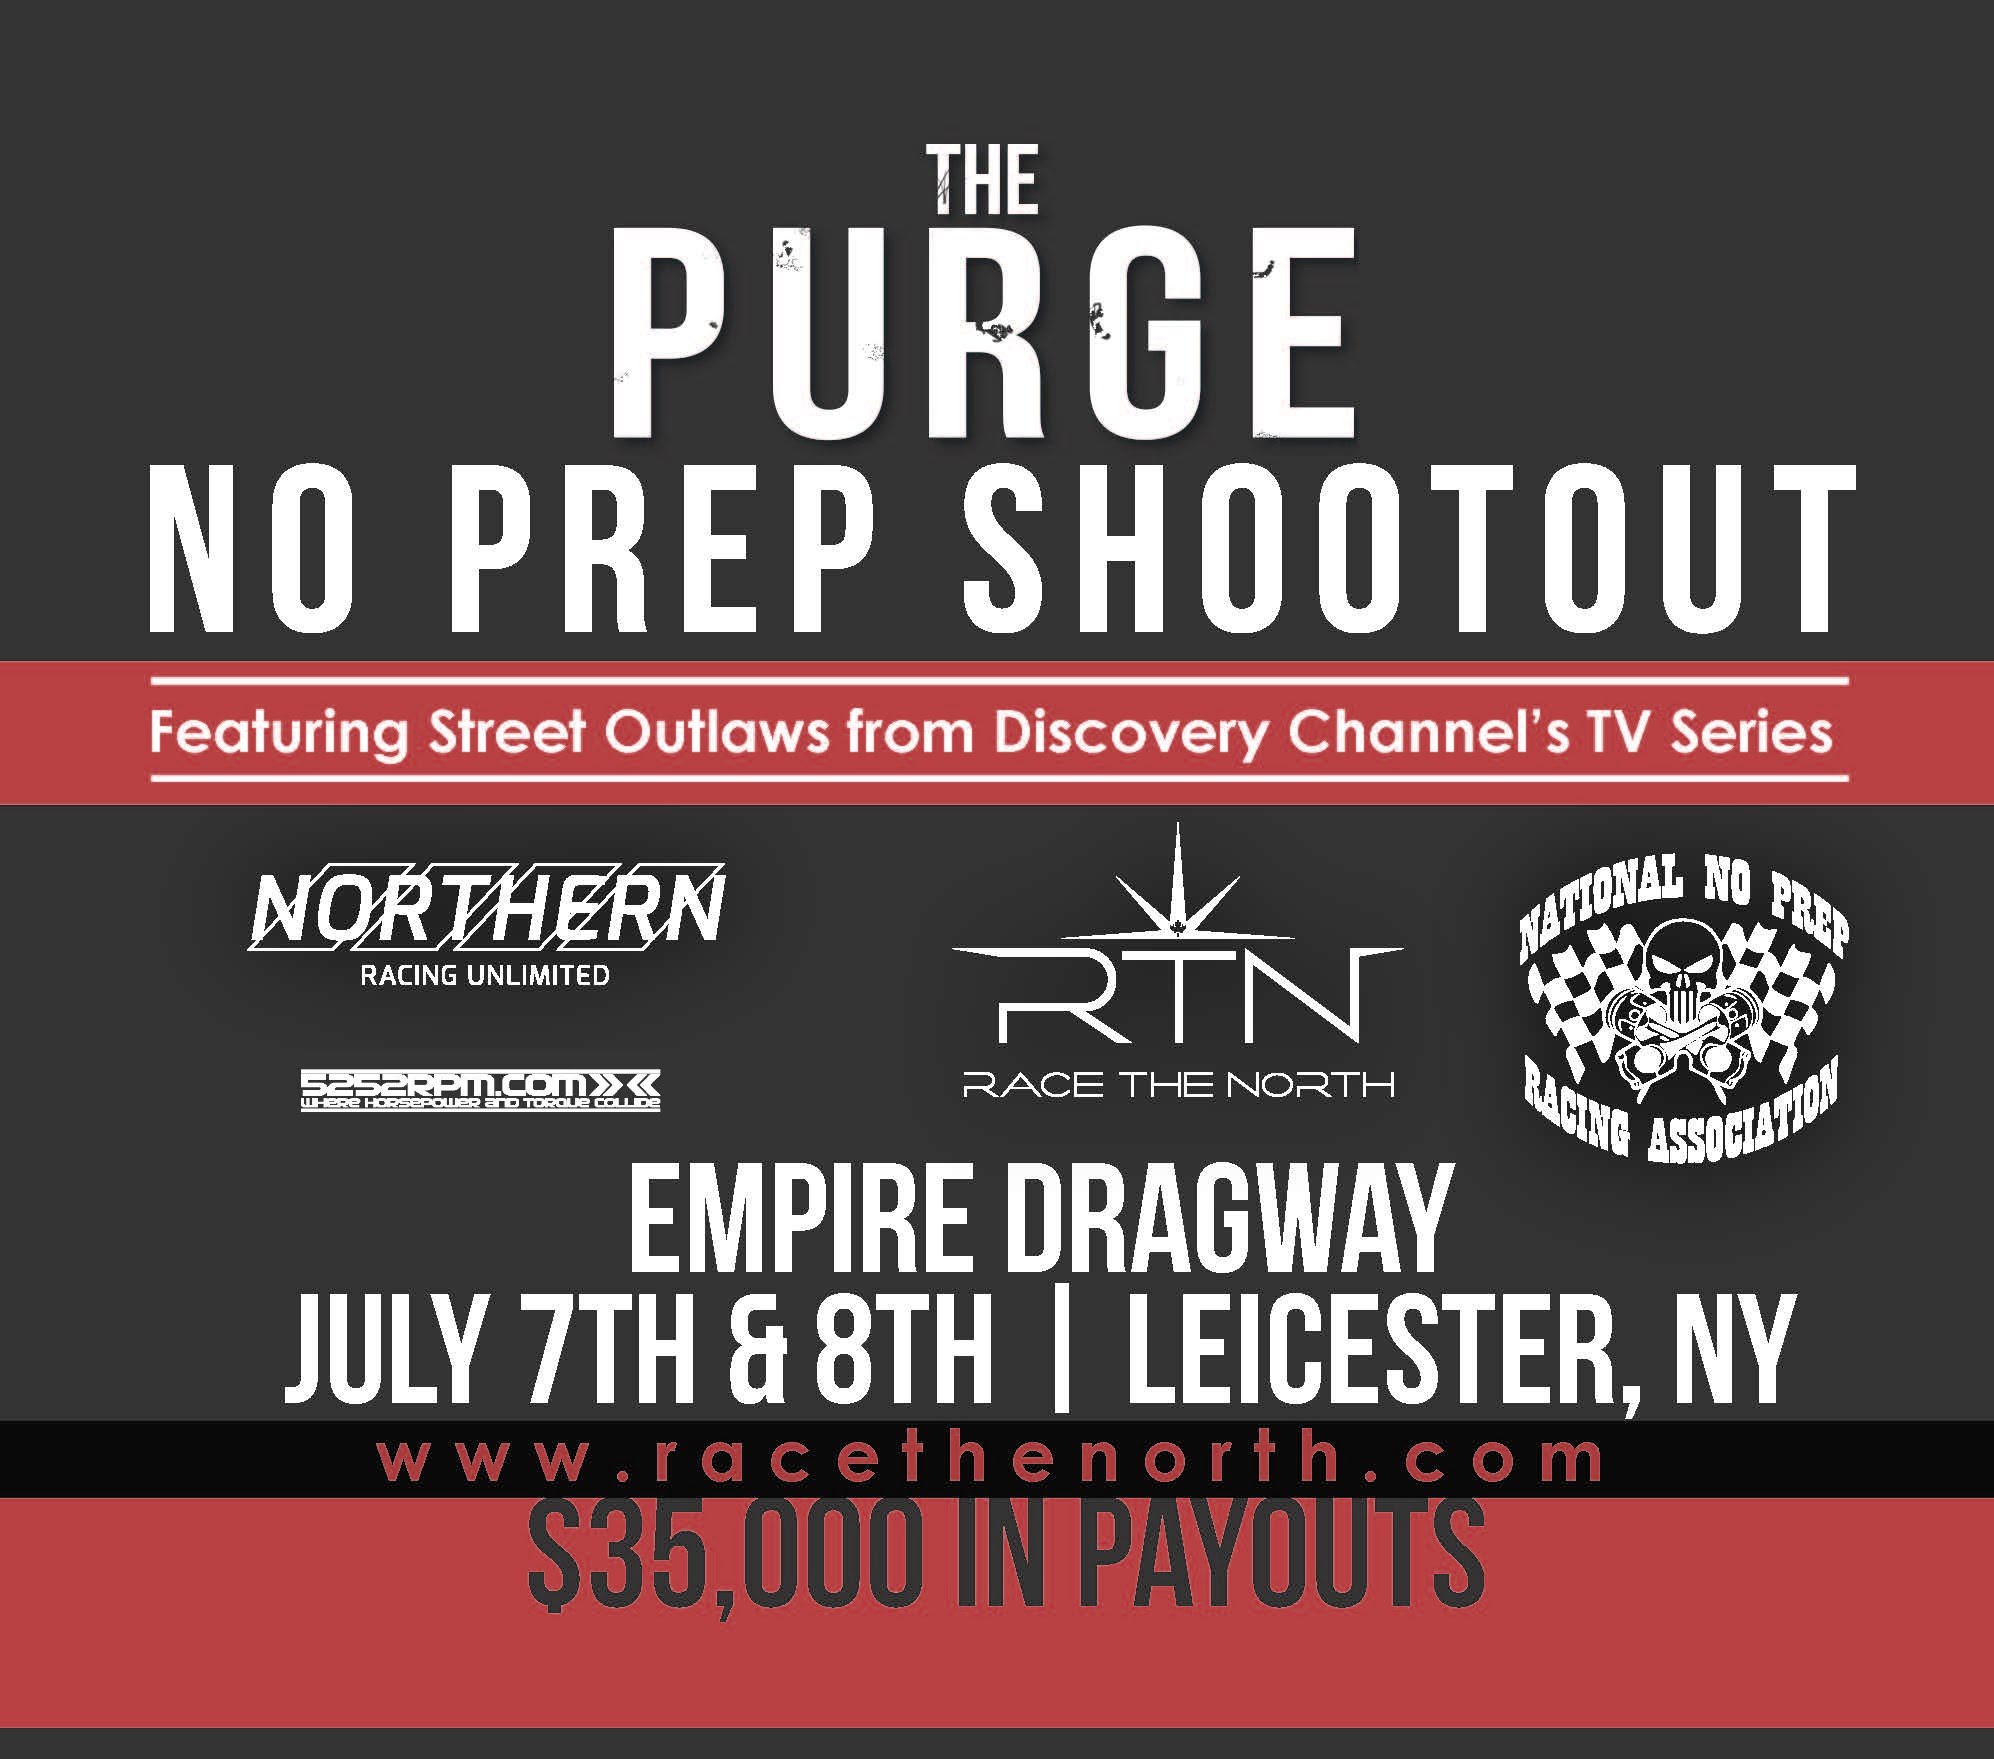 The Purge No Prep Shootout